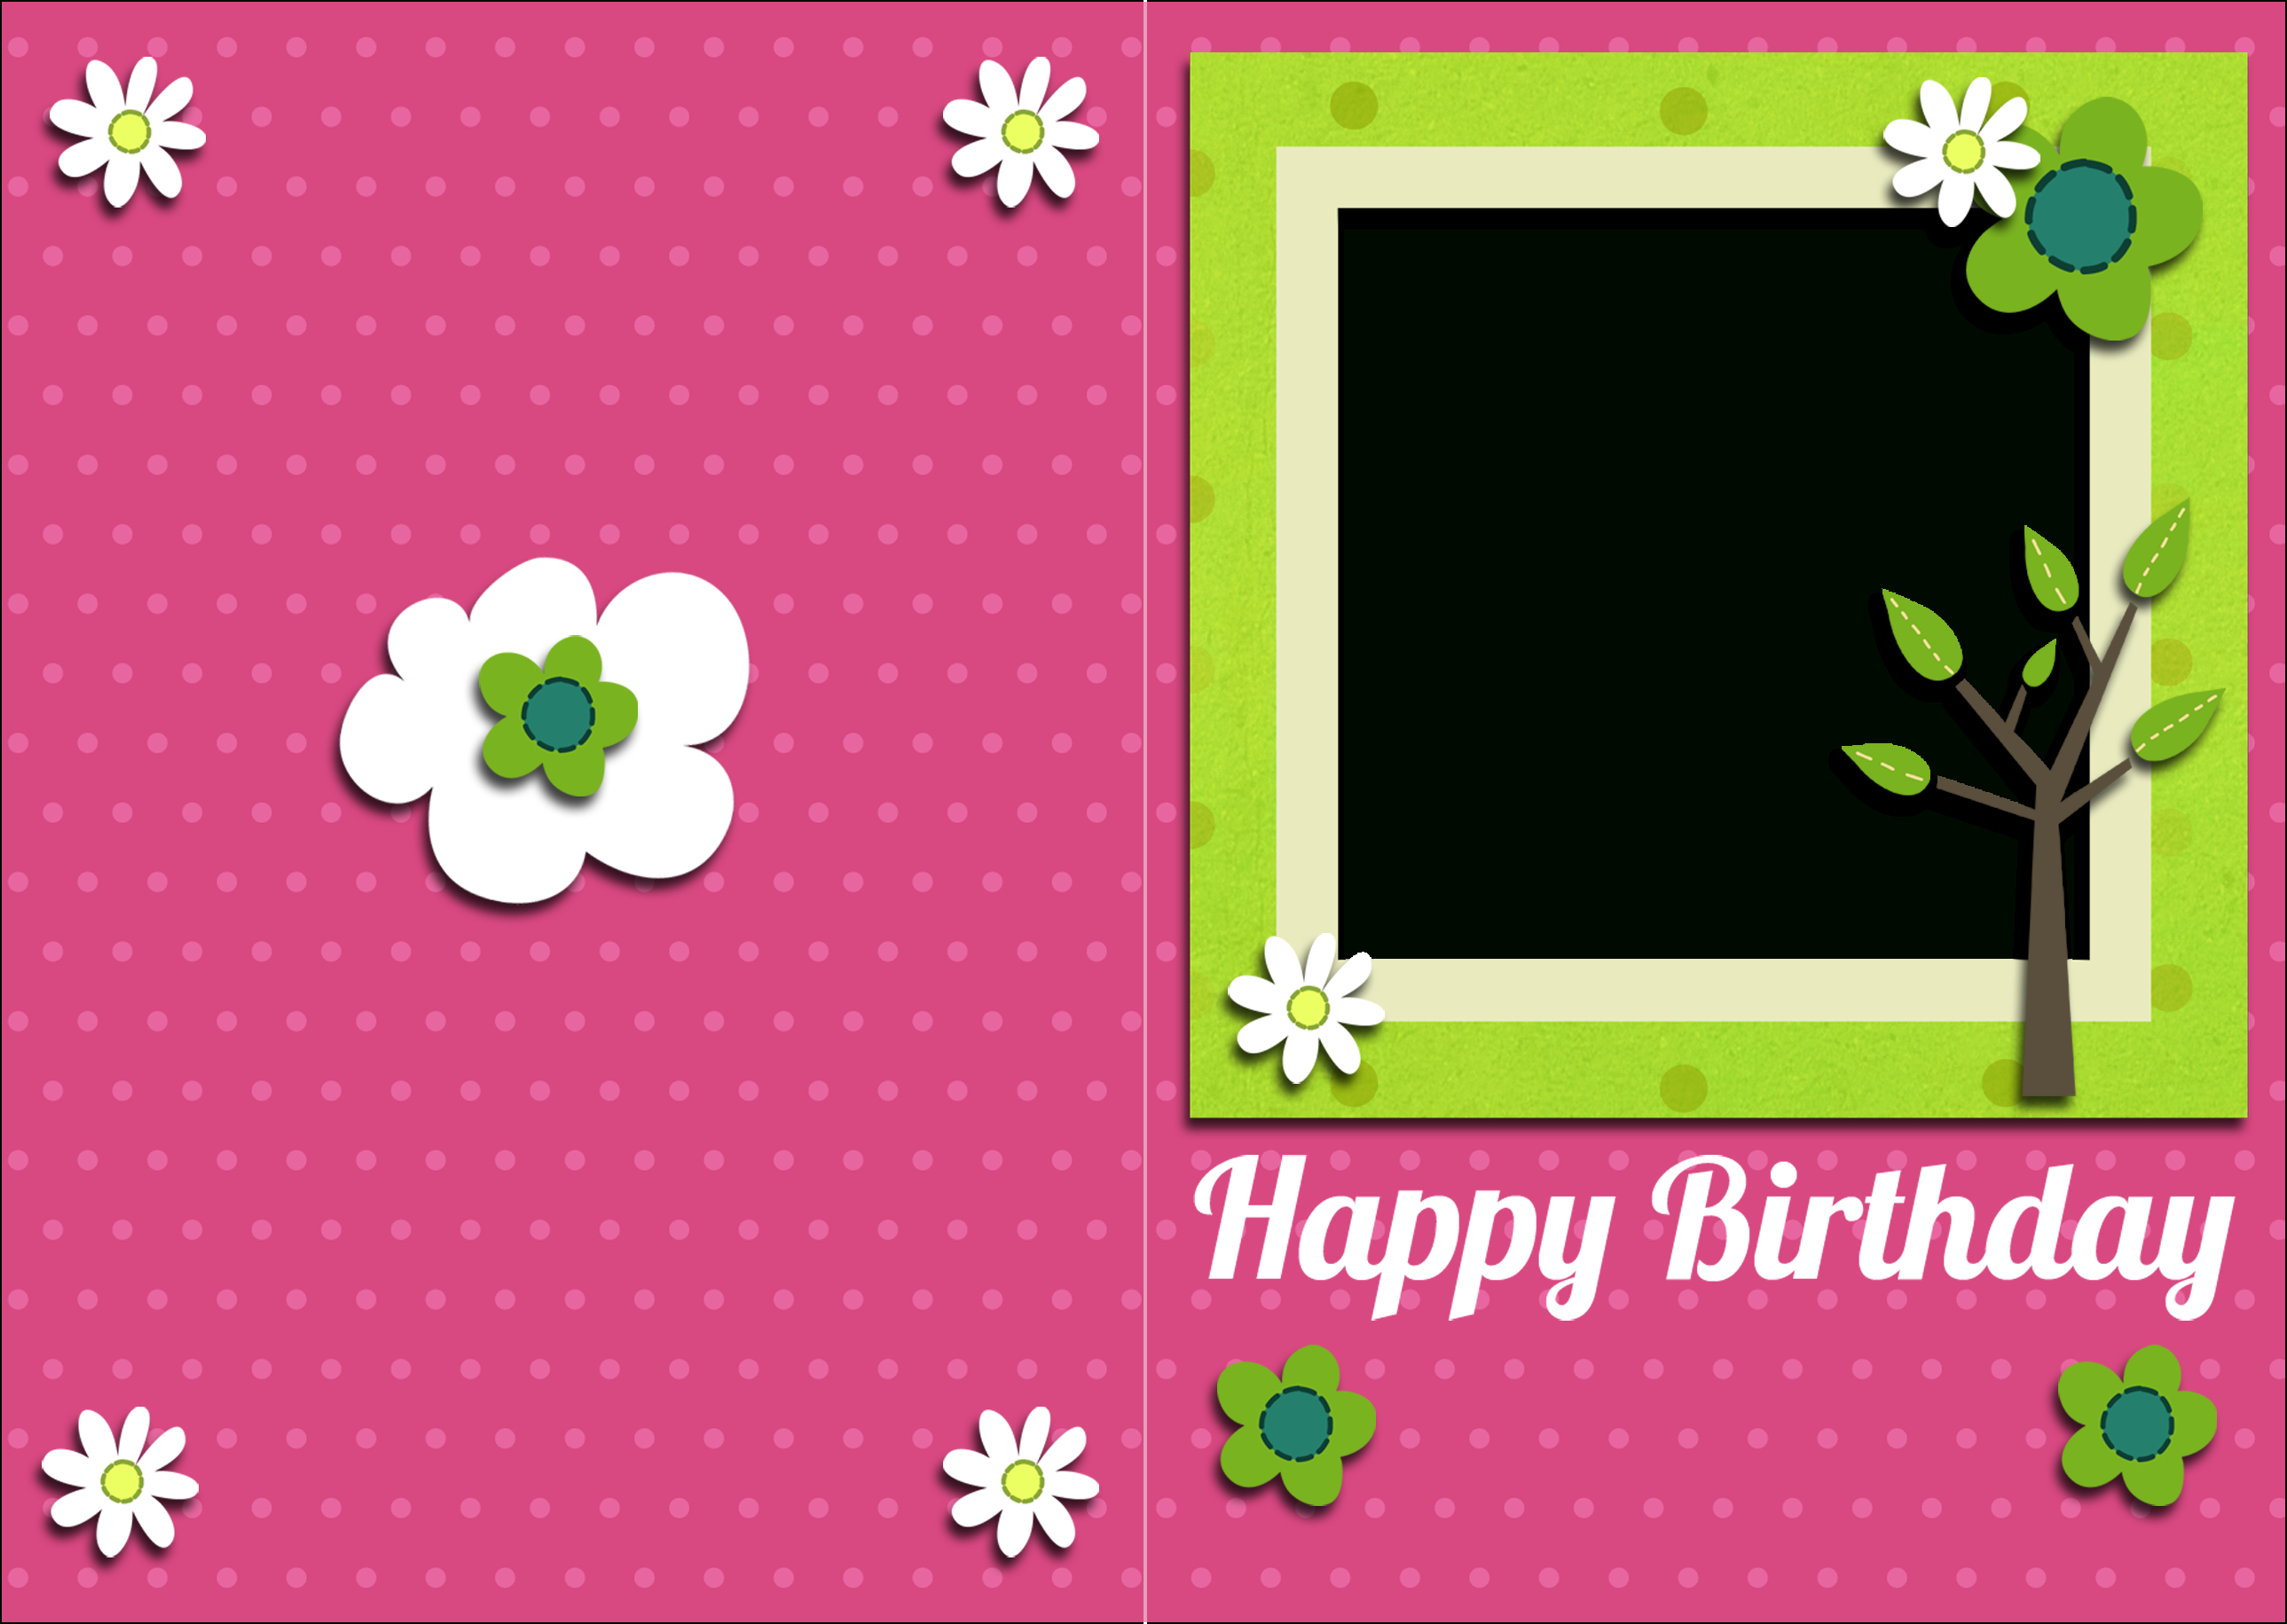 Printable Birthday Cards Hd Wallpapers Download Free Printable - Free Online Printable Birthday Cards